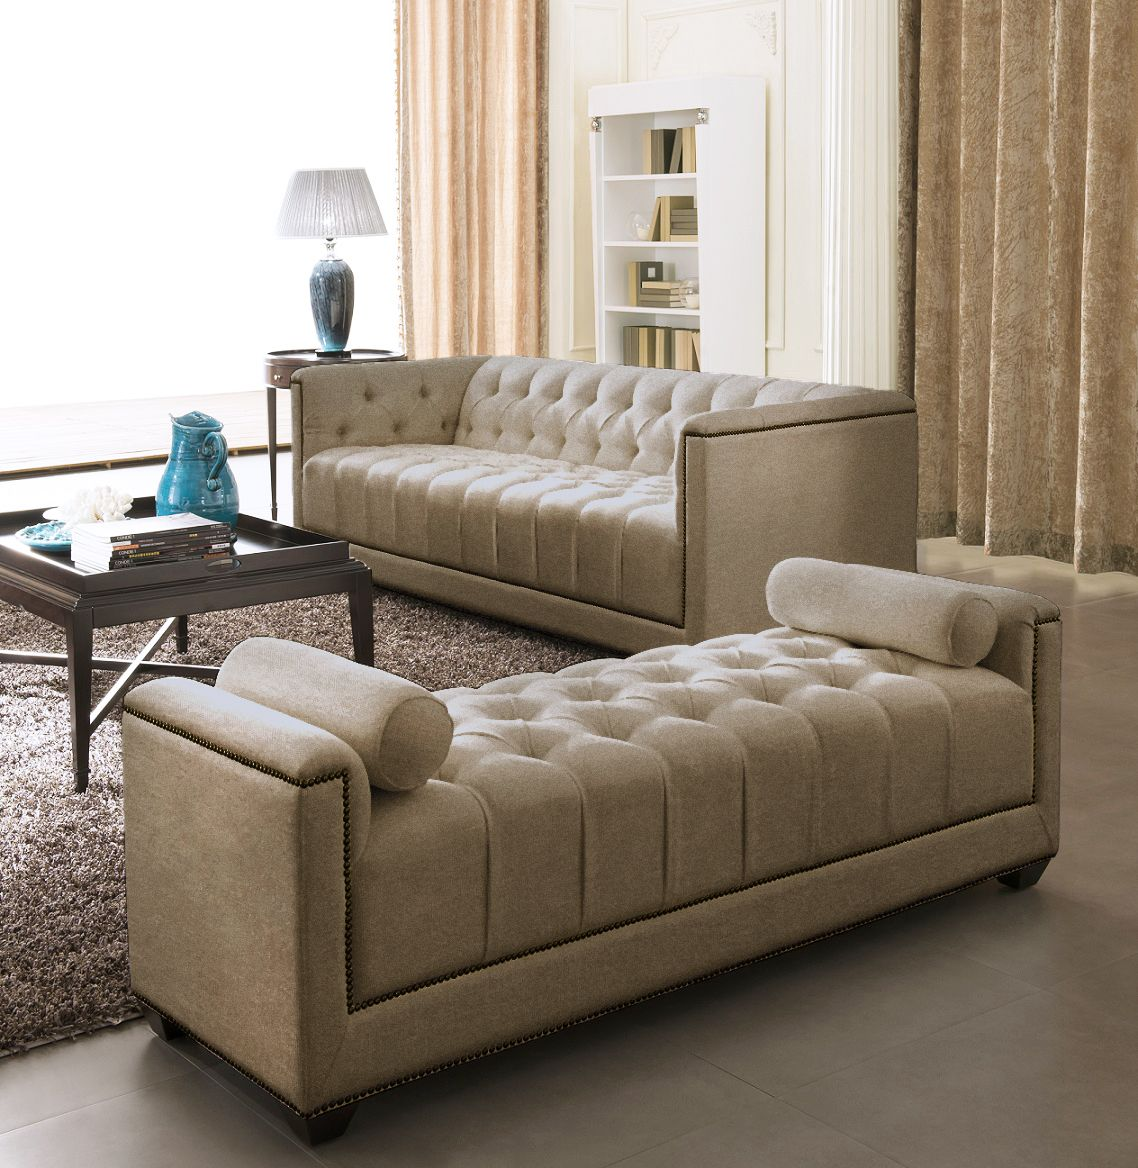 Fabric Sofa Set  Eden  Gold  Chester  Sofa set designs